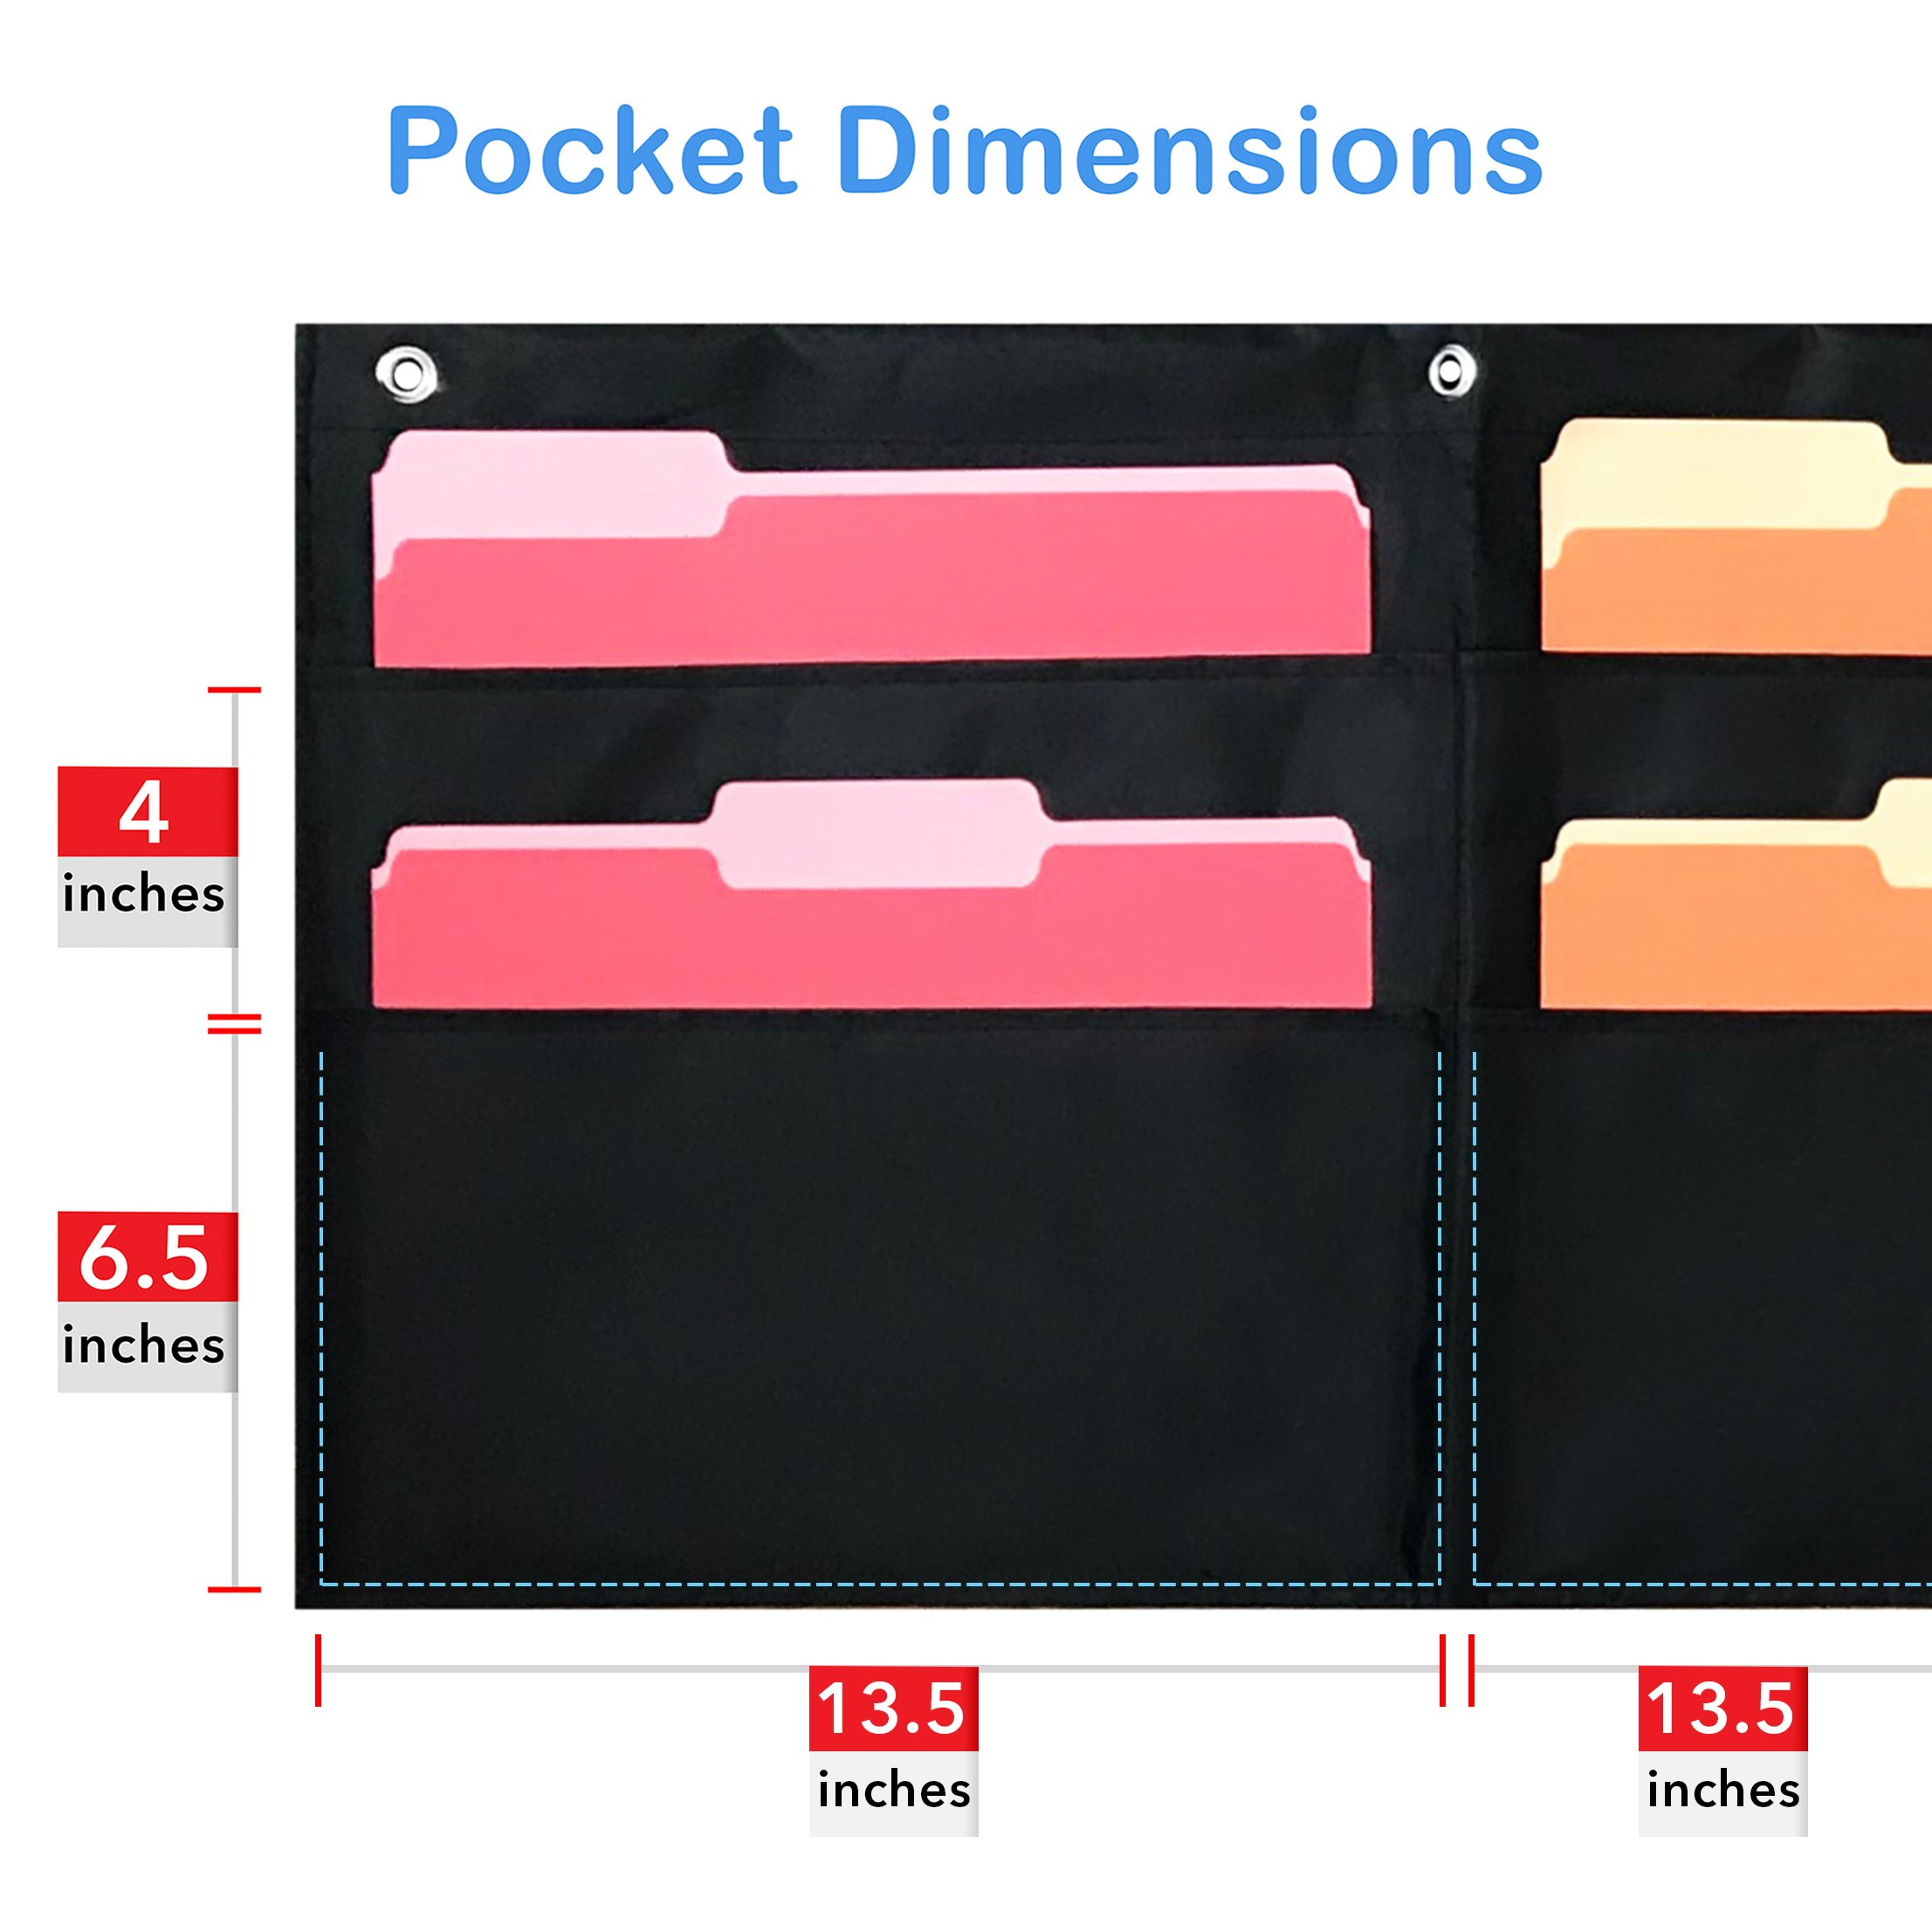 10 Pocket Horizontal Storage Pocket Chart, Hanging Wall File Organizer by Essex Wares - Organize Your Assignments, Files, Scrapbook Papers & More (Black) by Essex Wares (Image #2)